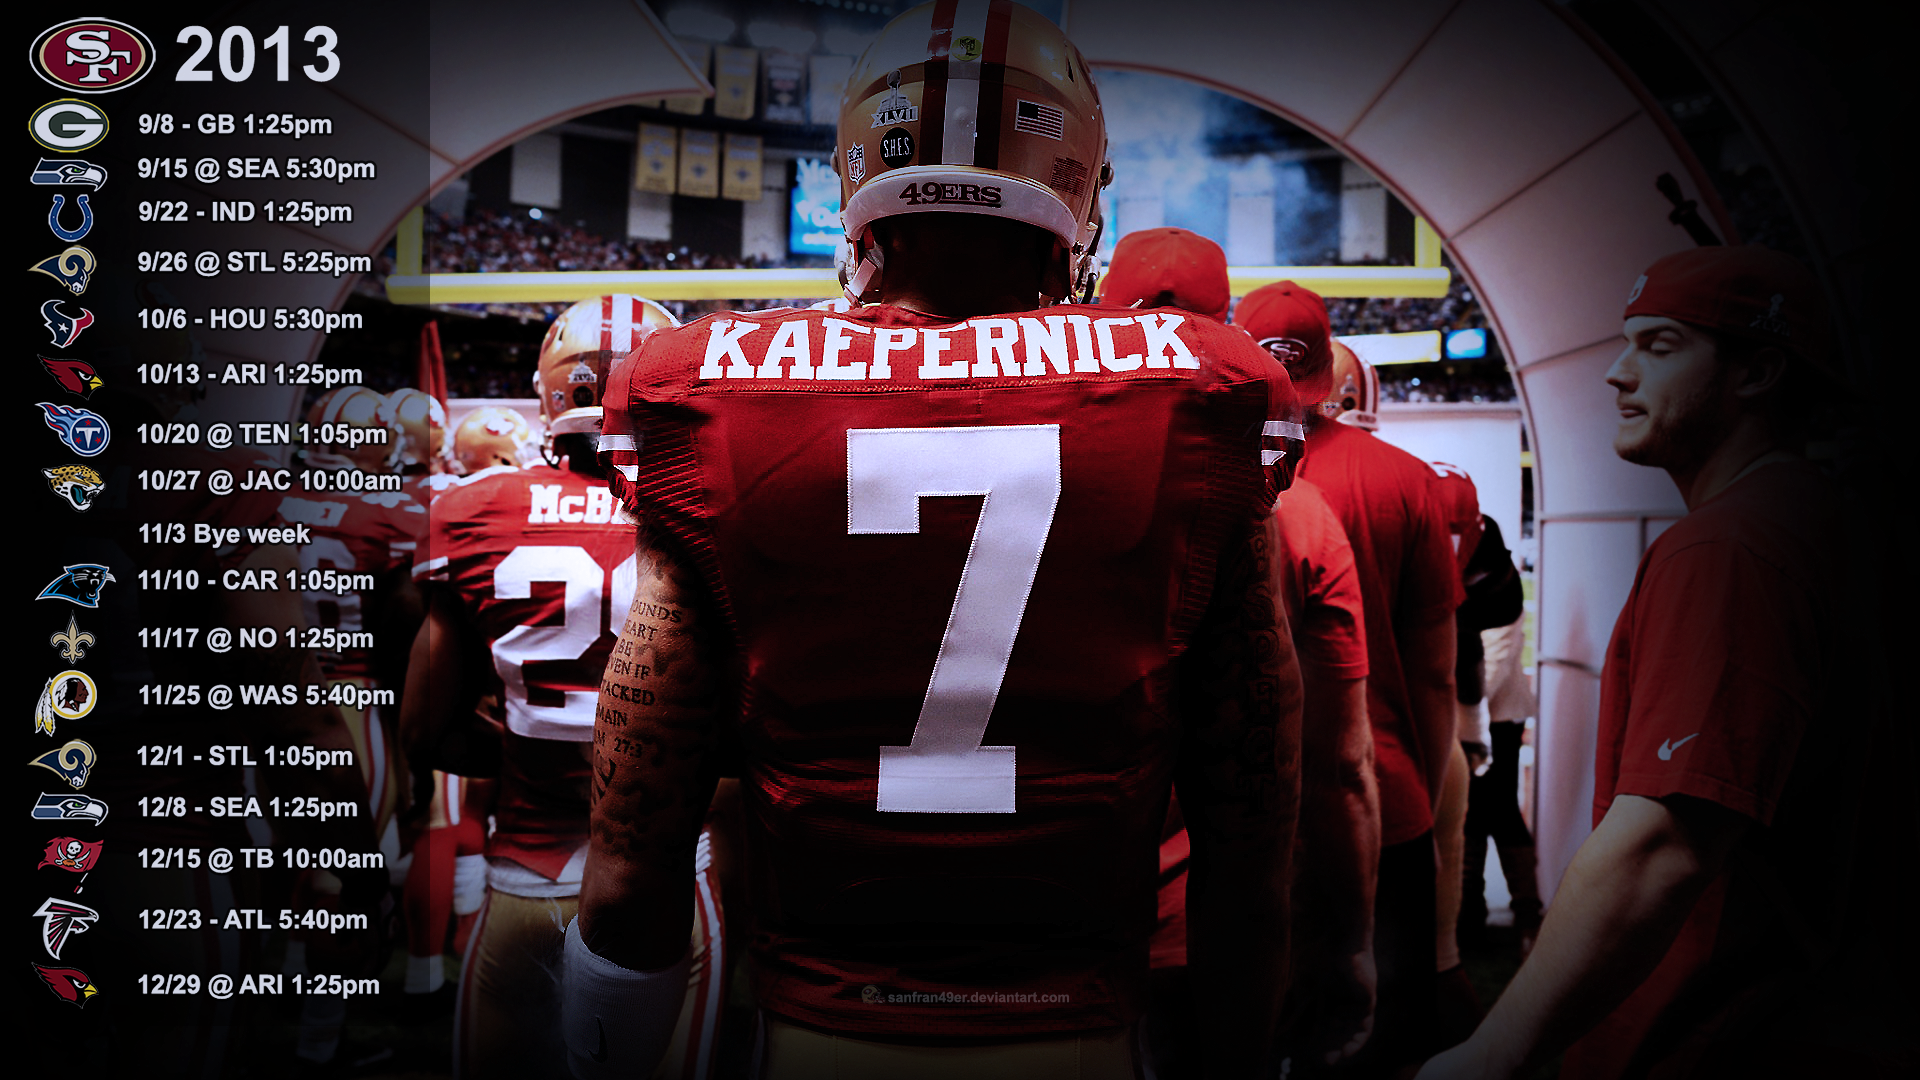 Kaepernick Wallpaper with 2013 schedule PST 2 by 1920x1080